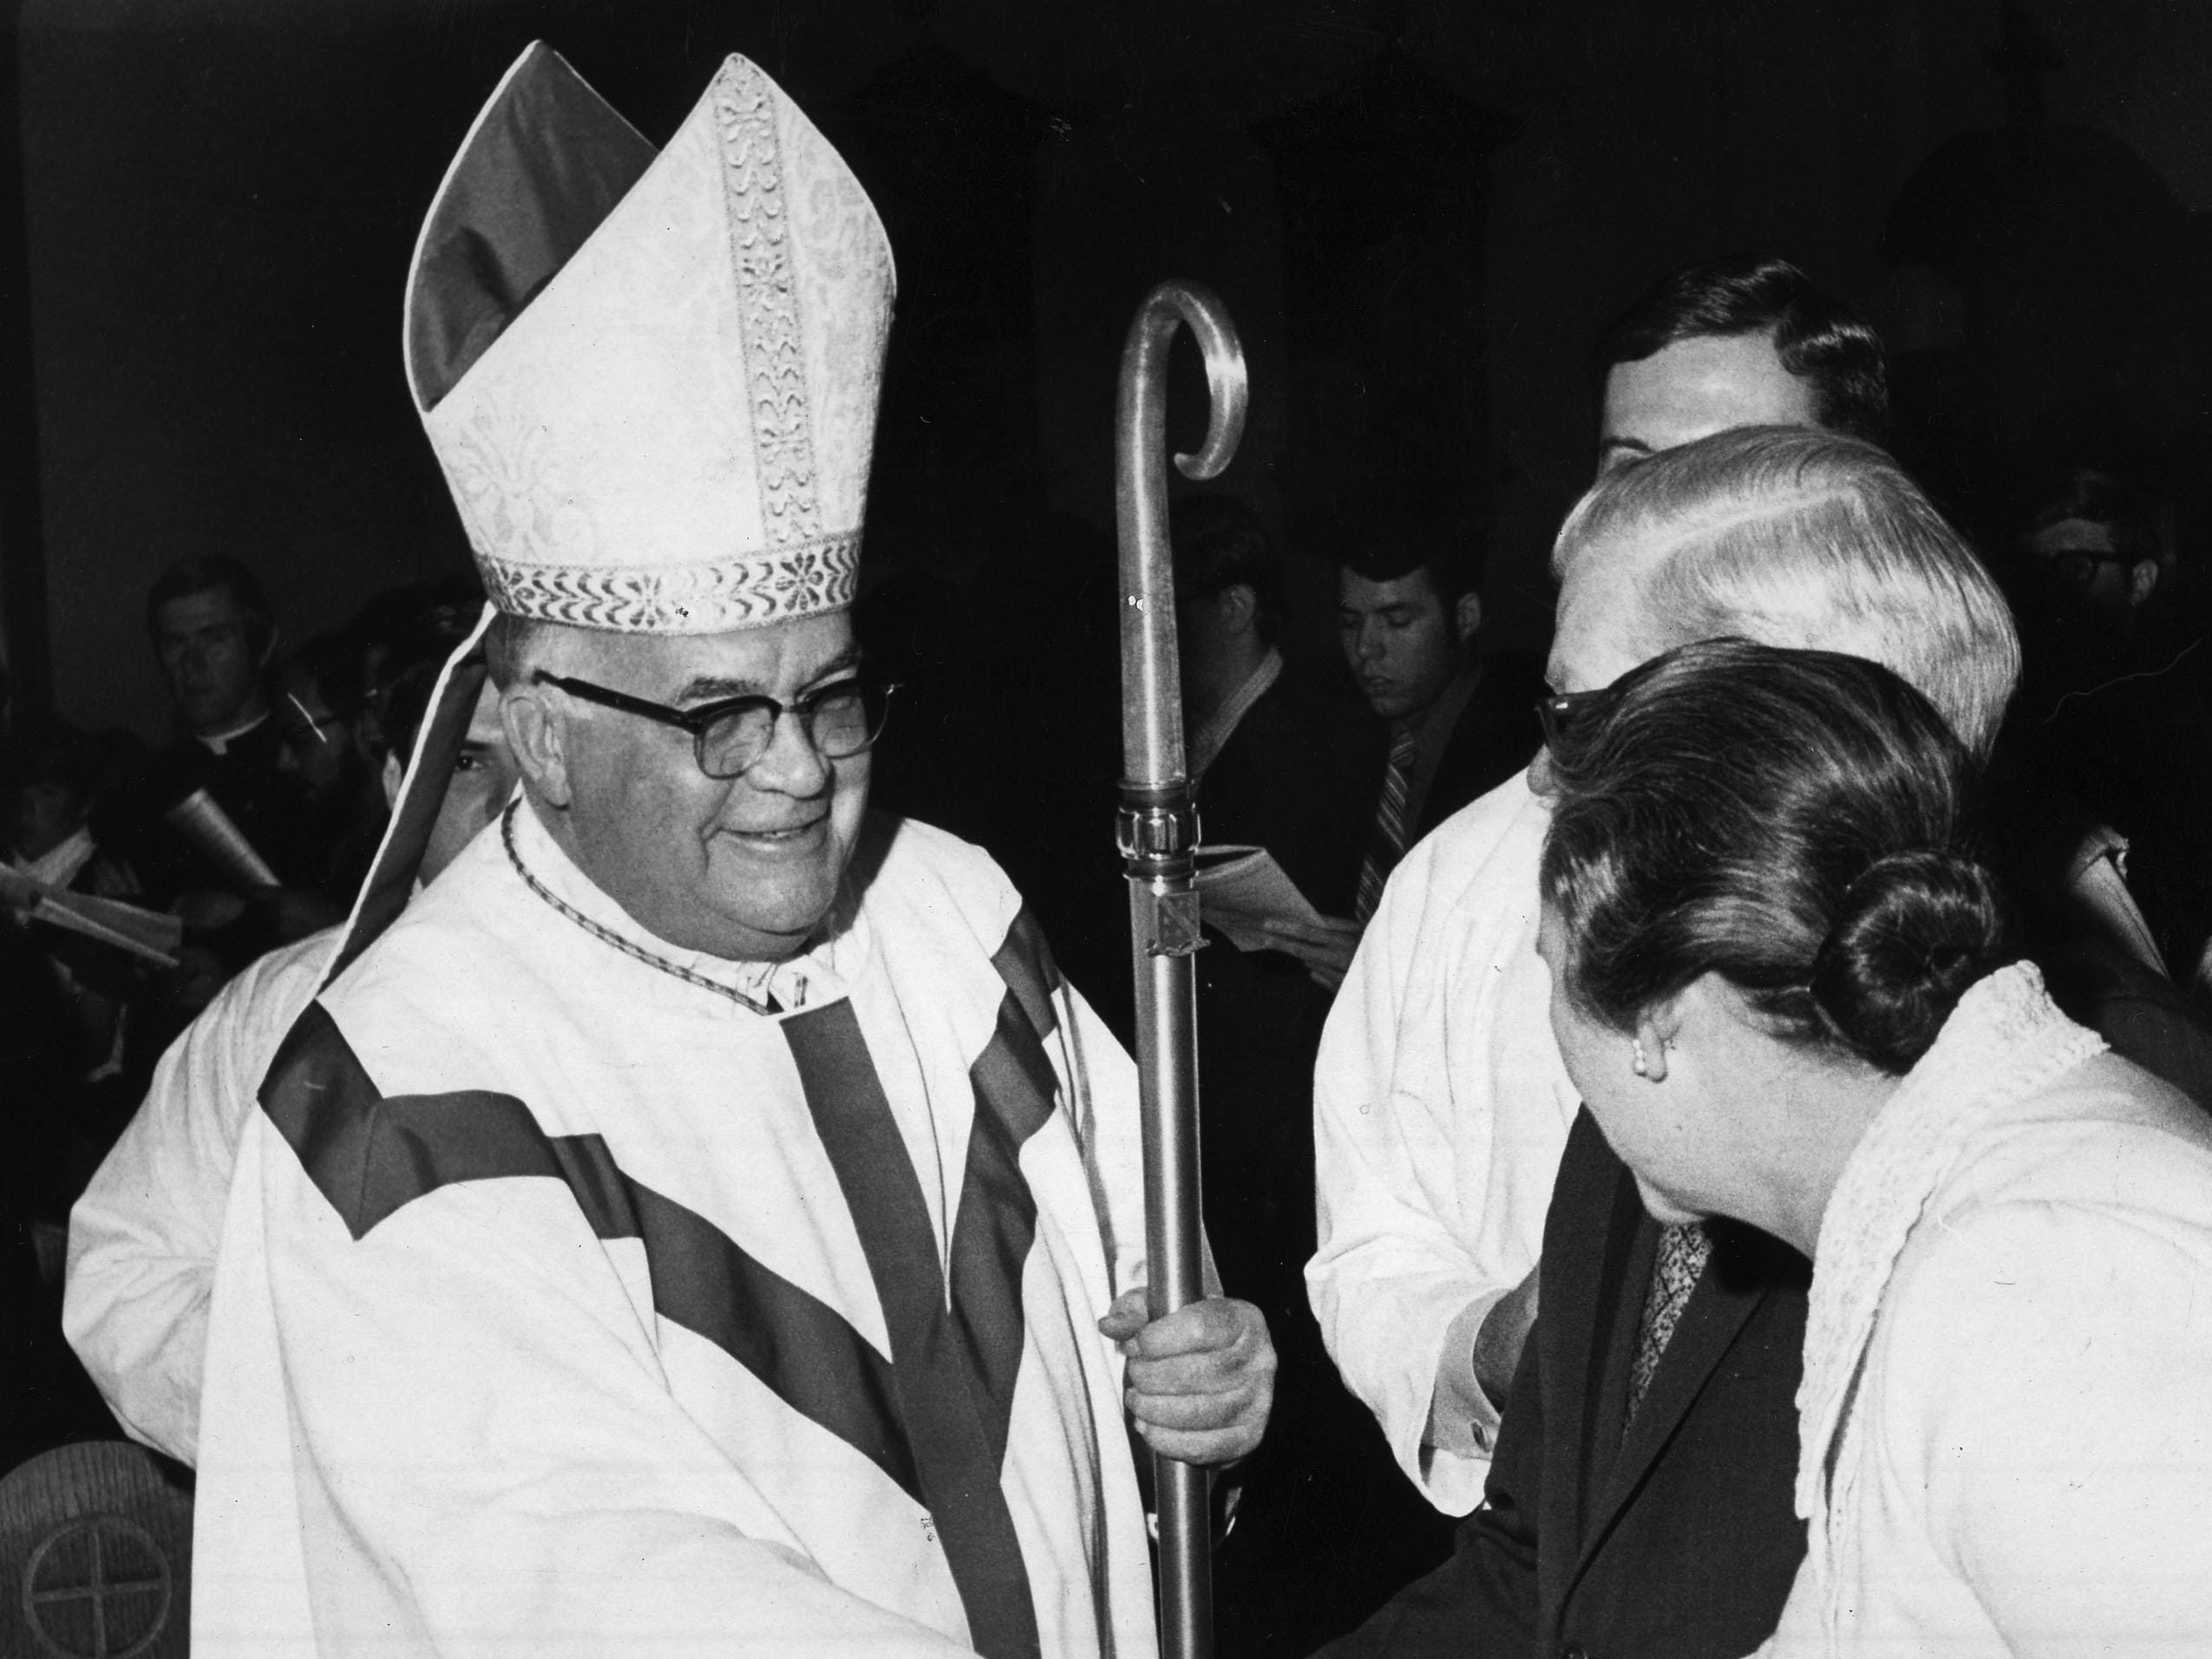 Bishop Carroll T. Dozier, of the Catholic Diocese of Memphis, shakes hands with Dr. and Mrs. David Taylor during a processional on May 21, 1971.